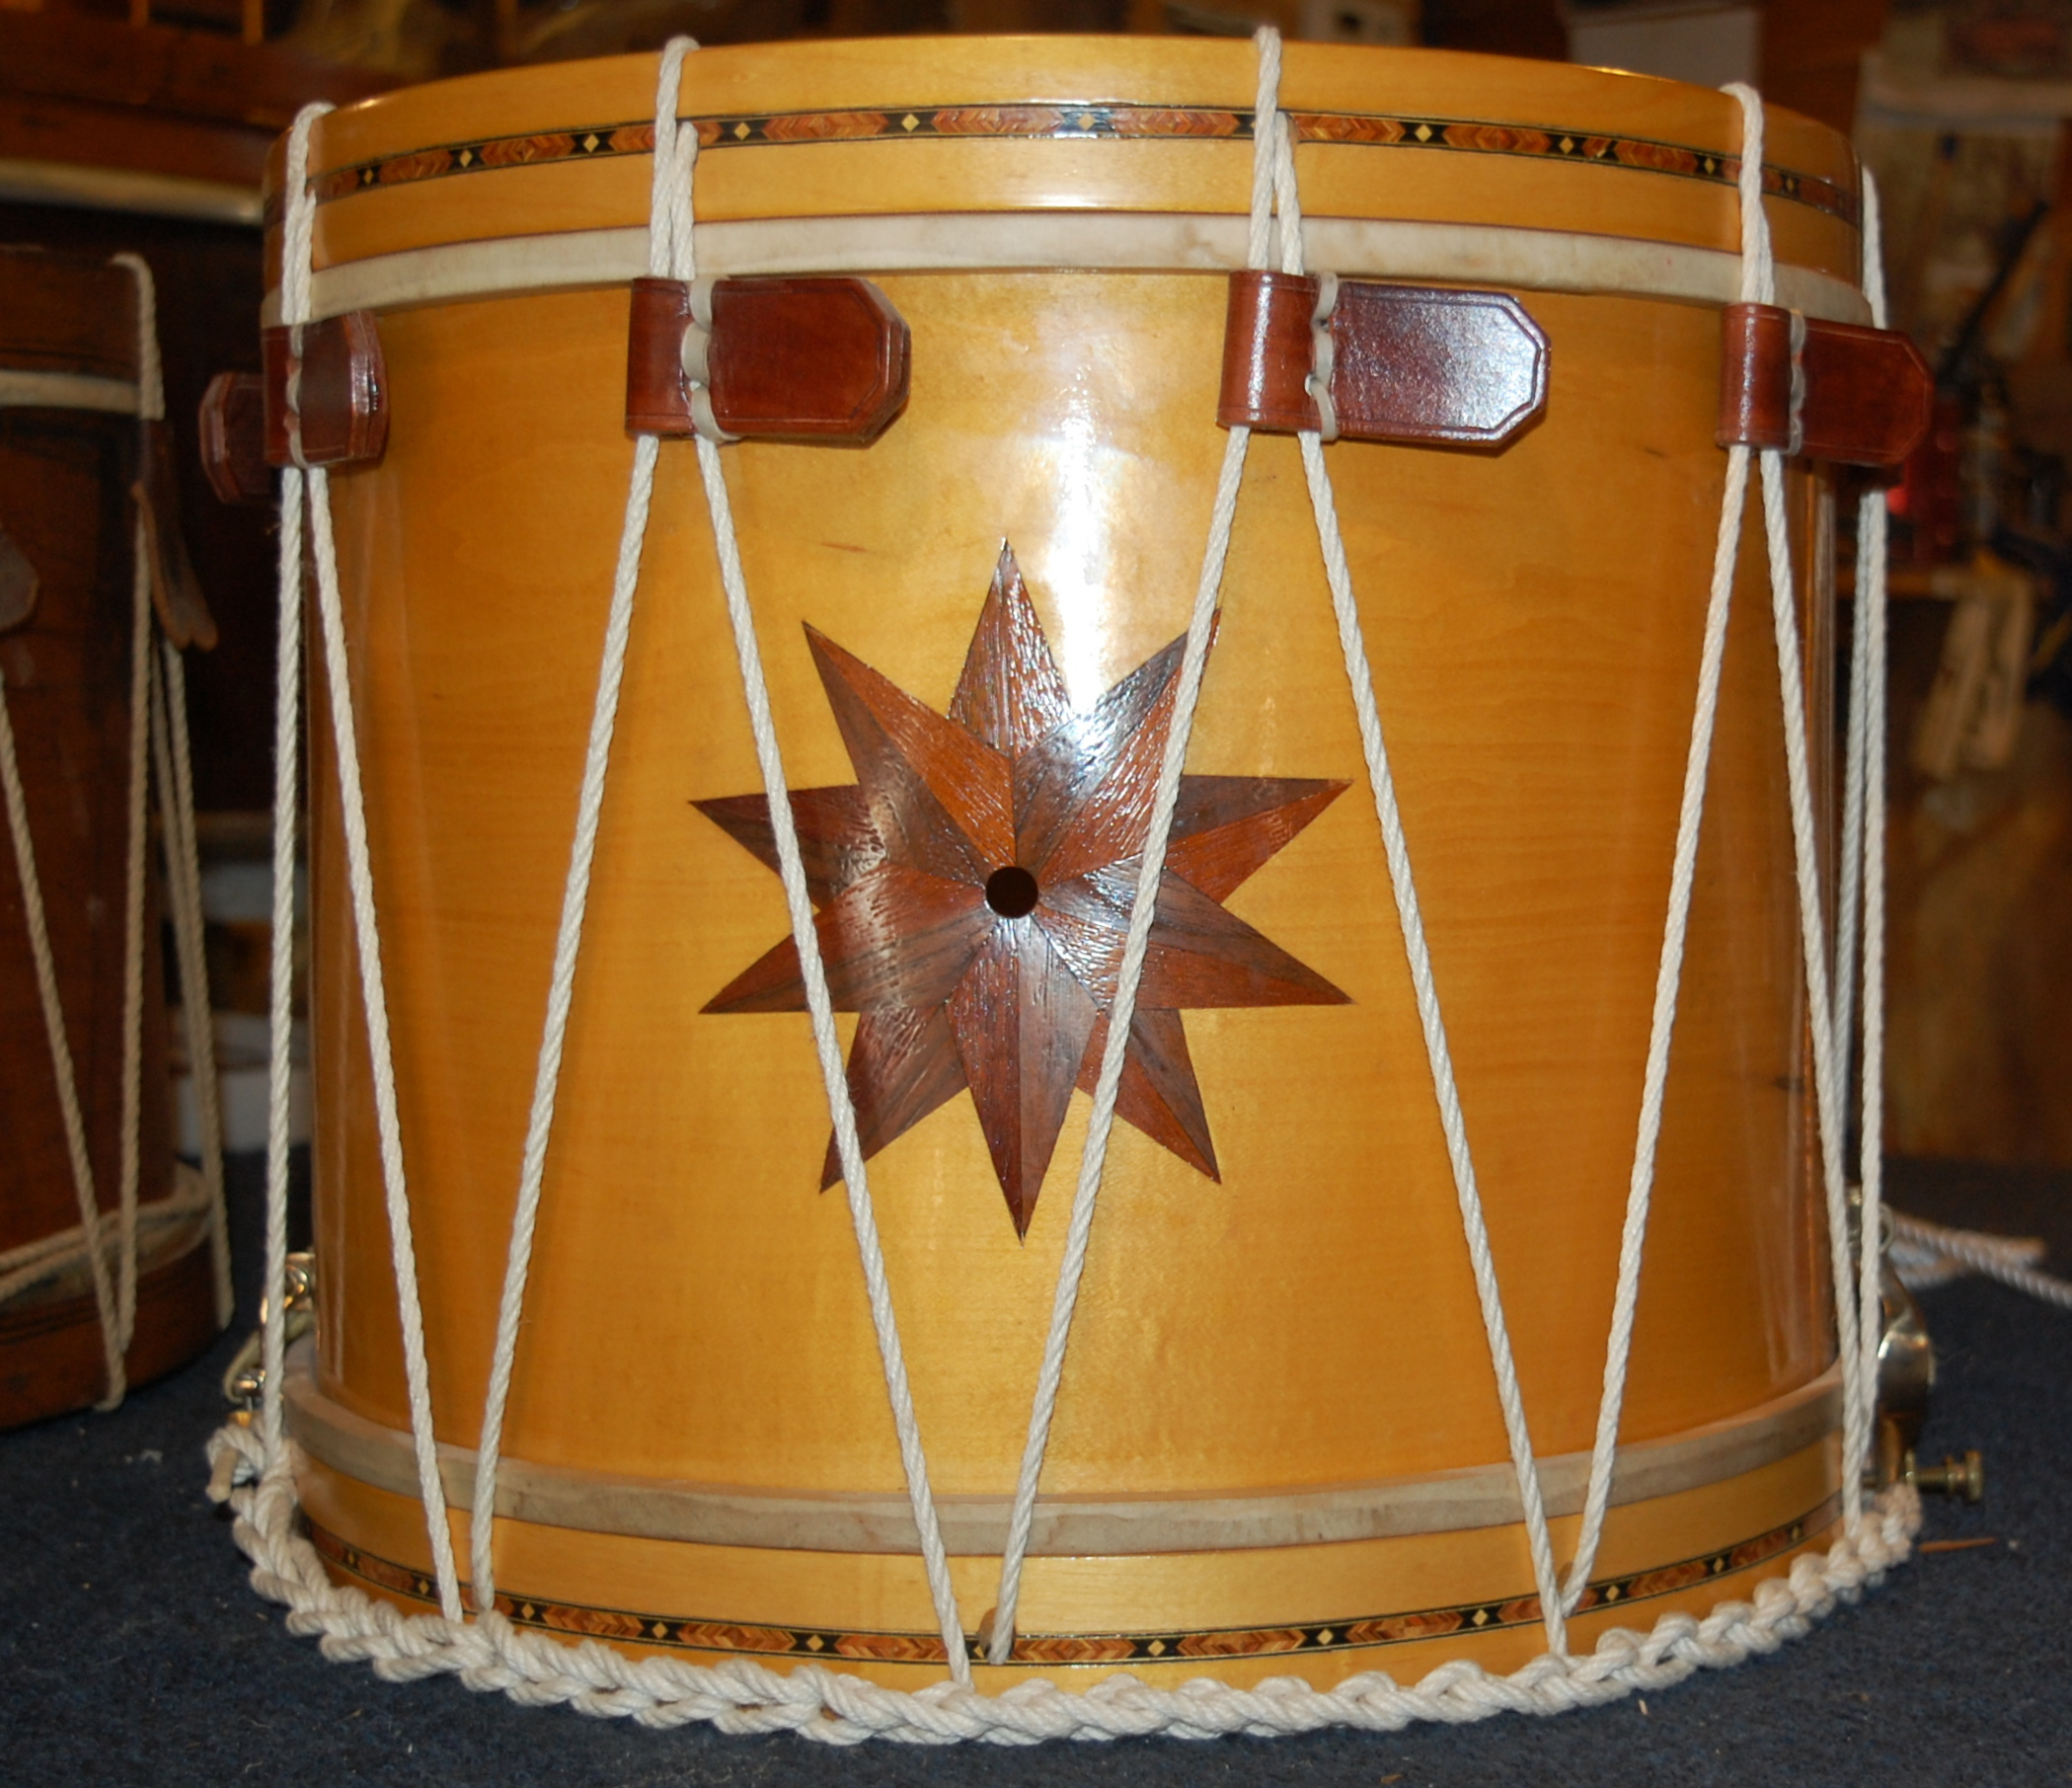 Superb Special Offers Rope Tension Drums Cooperman Fife And Drums Wiring Cloud Ymoonsalvmohammedshrineorg